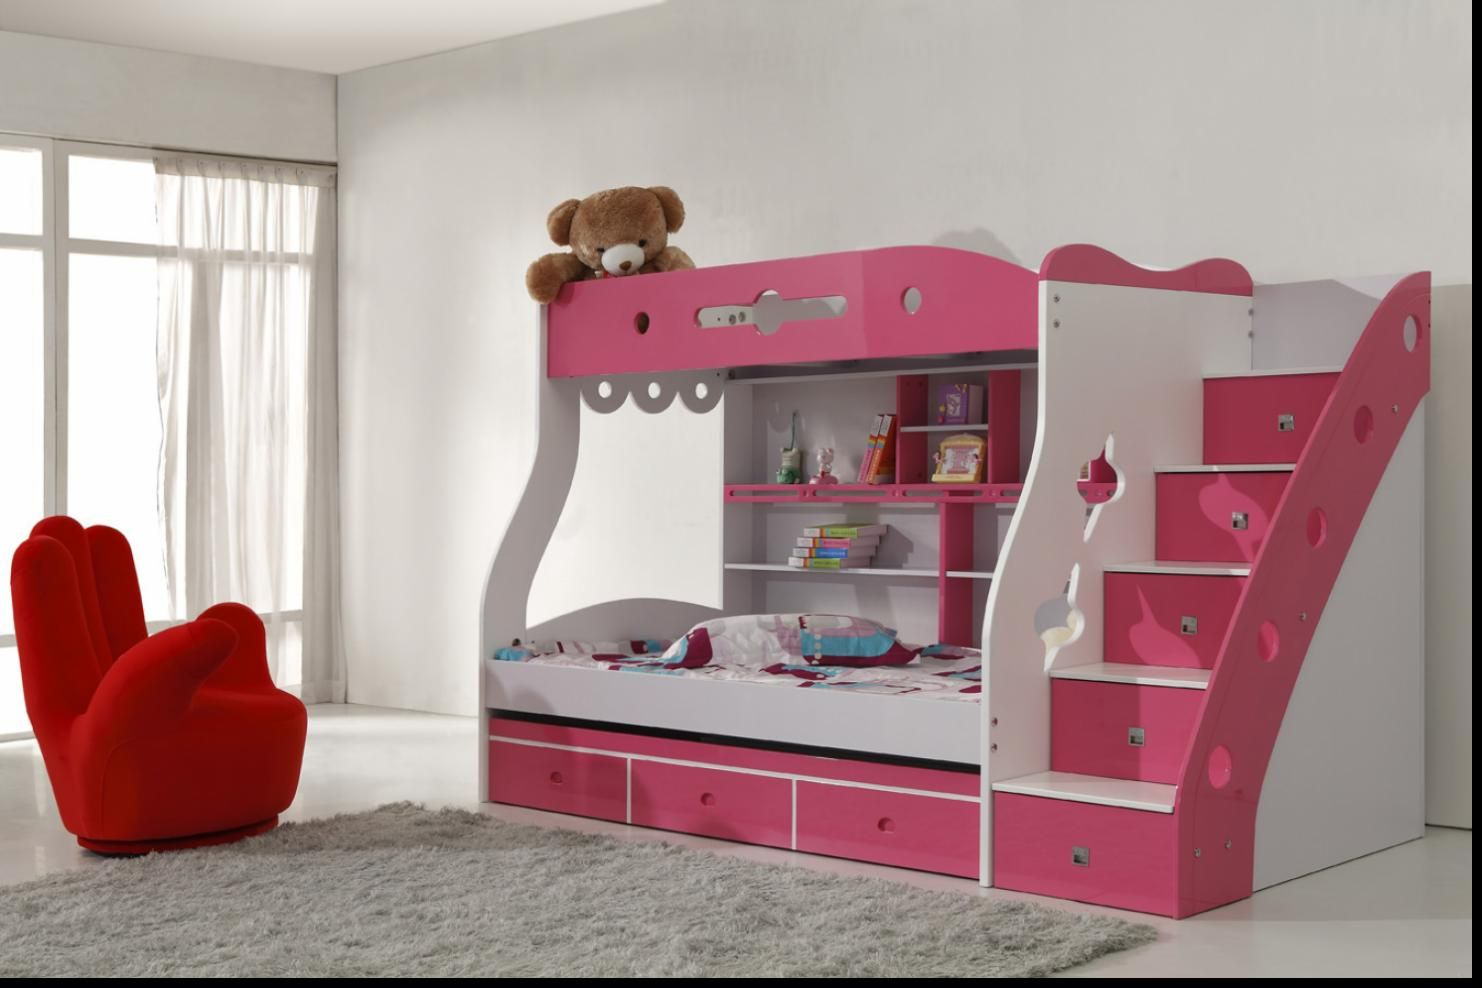 Double Deck Bed For Kids Design Double Deck Bed Decker Cpyufhp